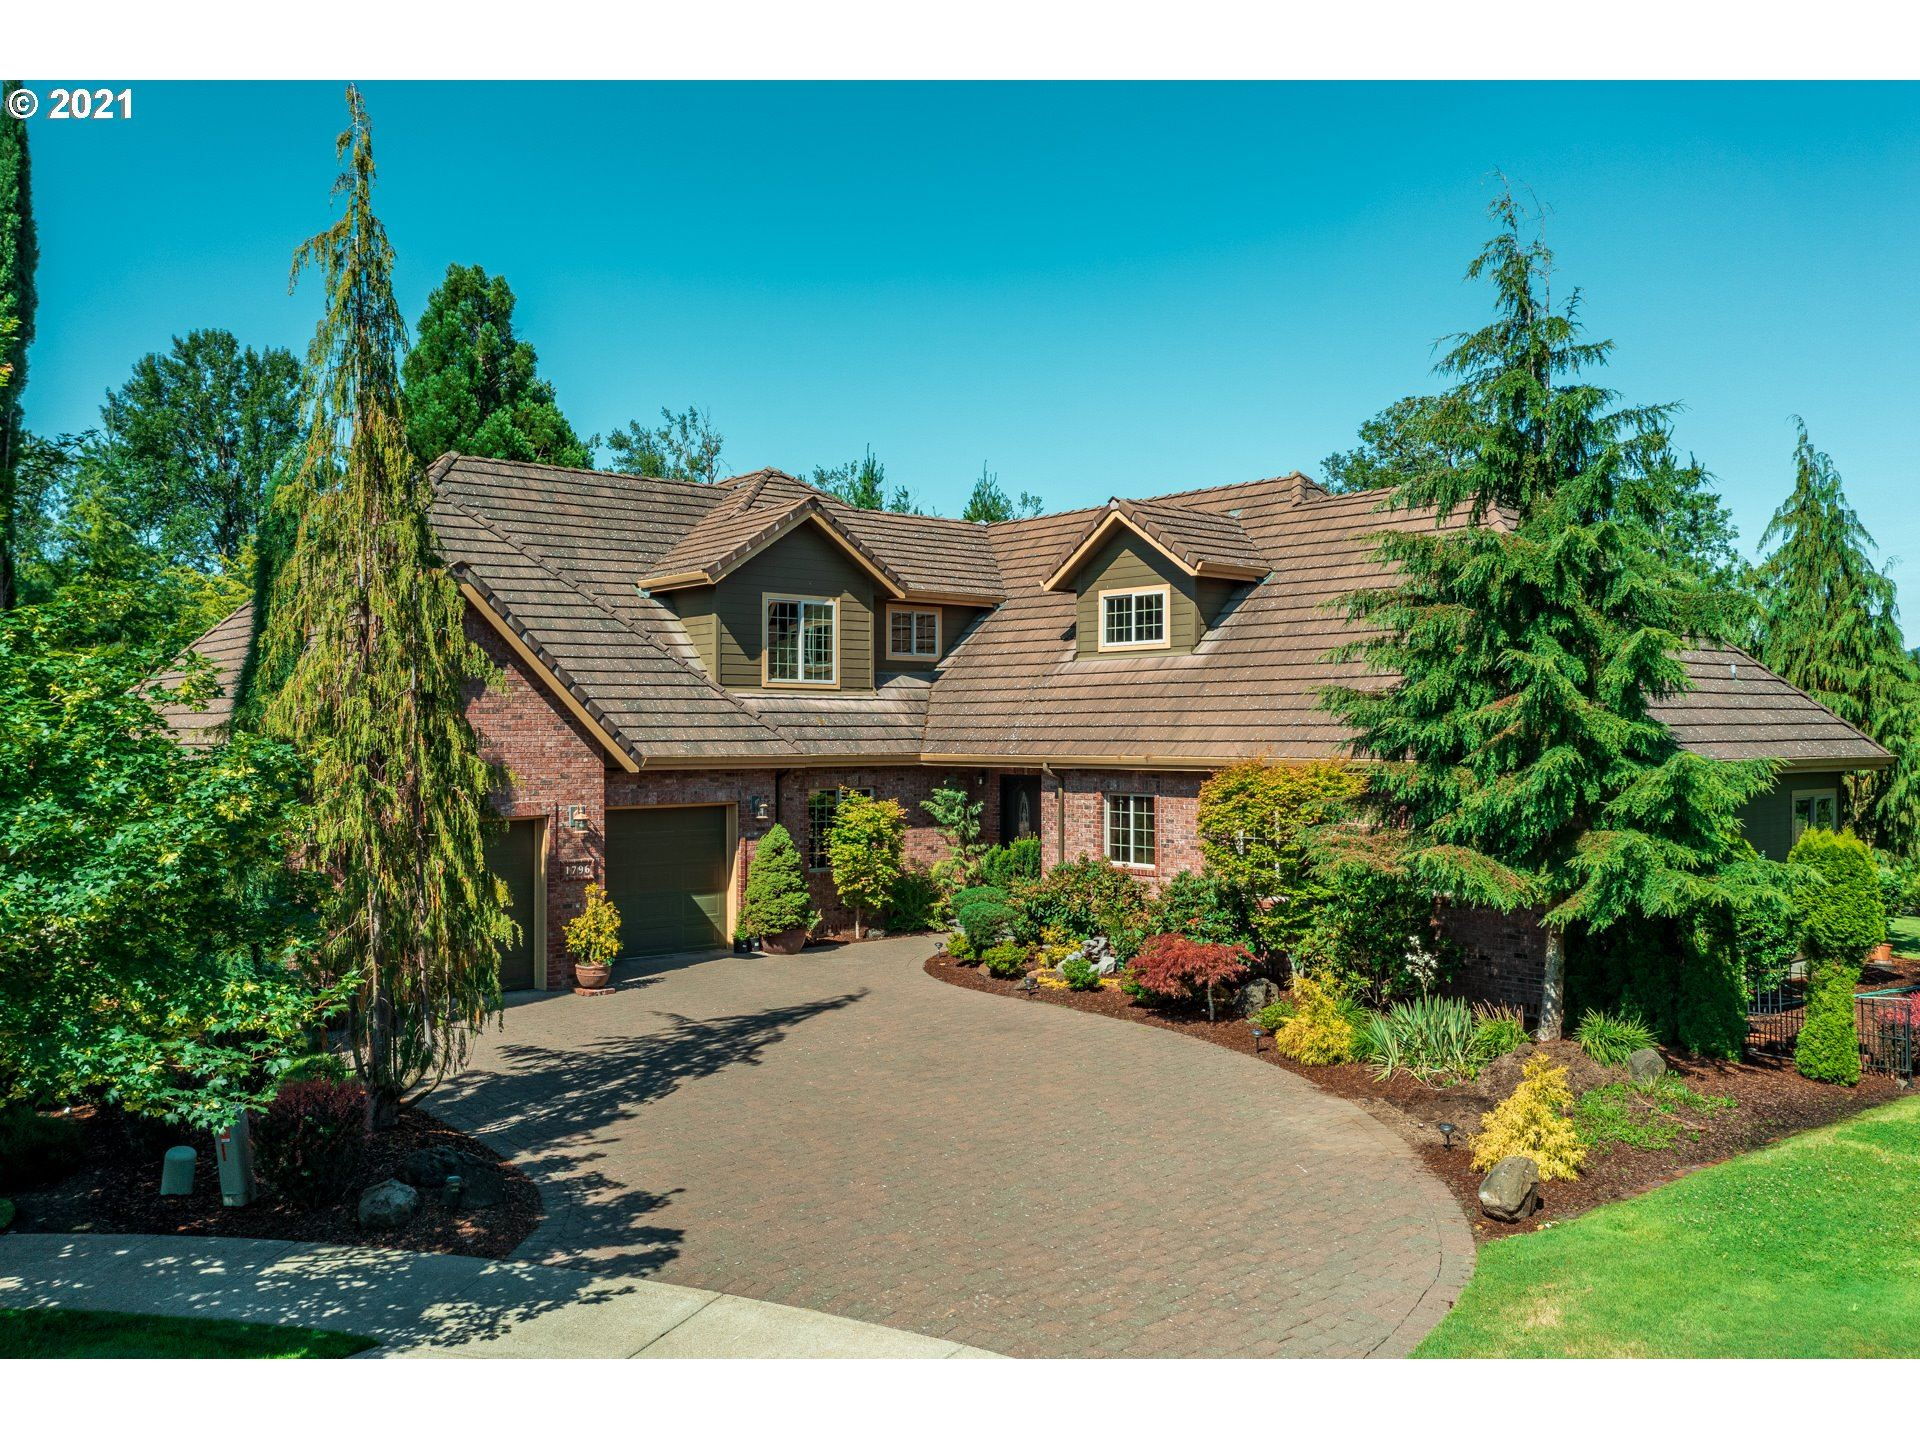 Photo of 1796 NW TROON CT, McMinnville, OR 97128 (MLS # 21320054)